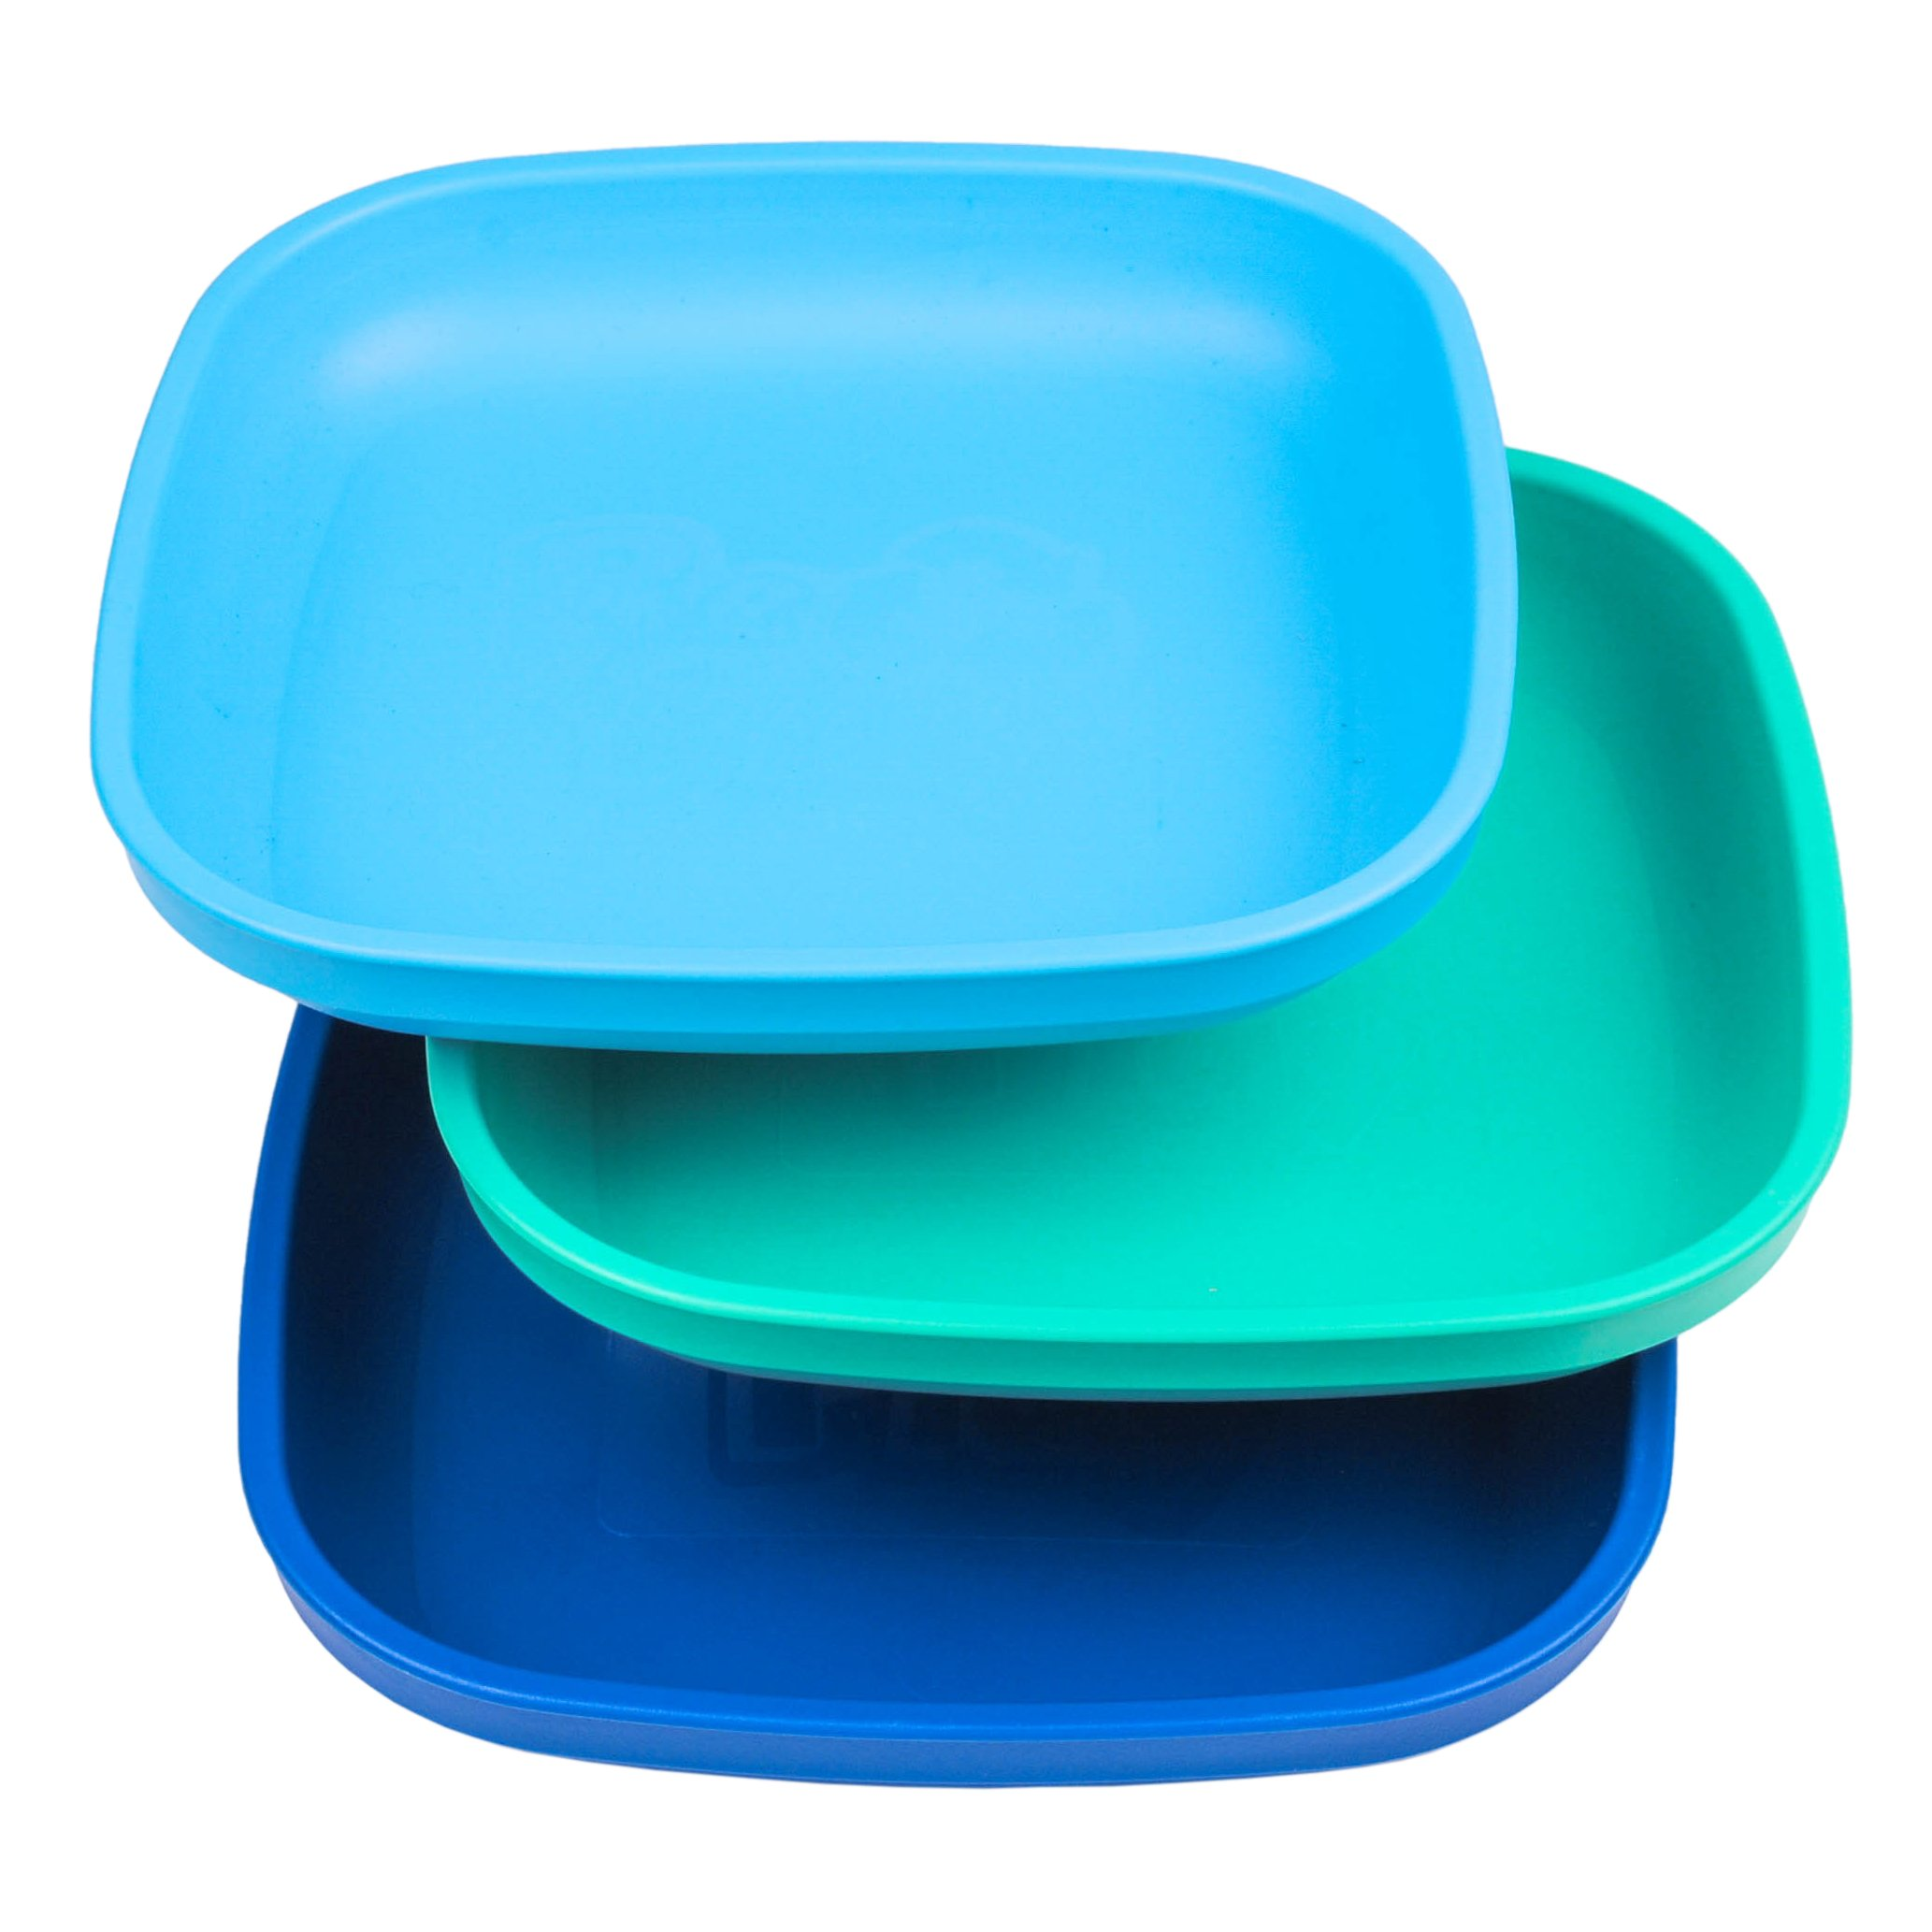 Re-Play Made in USA 3pk - 7.37'' Plates with Deep Sides for Easy Baby, Toddler, Child Feeding - Sky Blue, Aqua, Navy Blue (True Blue Collection) Eco Friendly Heavyweight Recycled Polypropylene by Re-Play